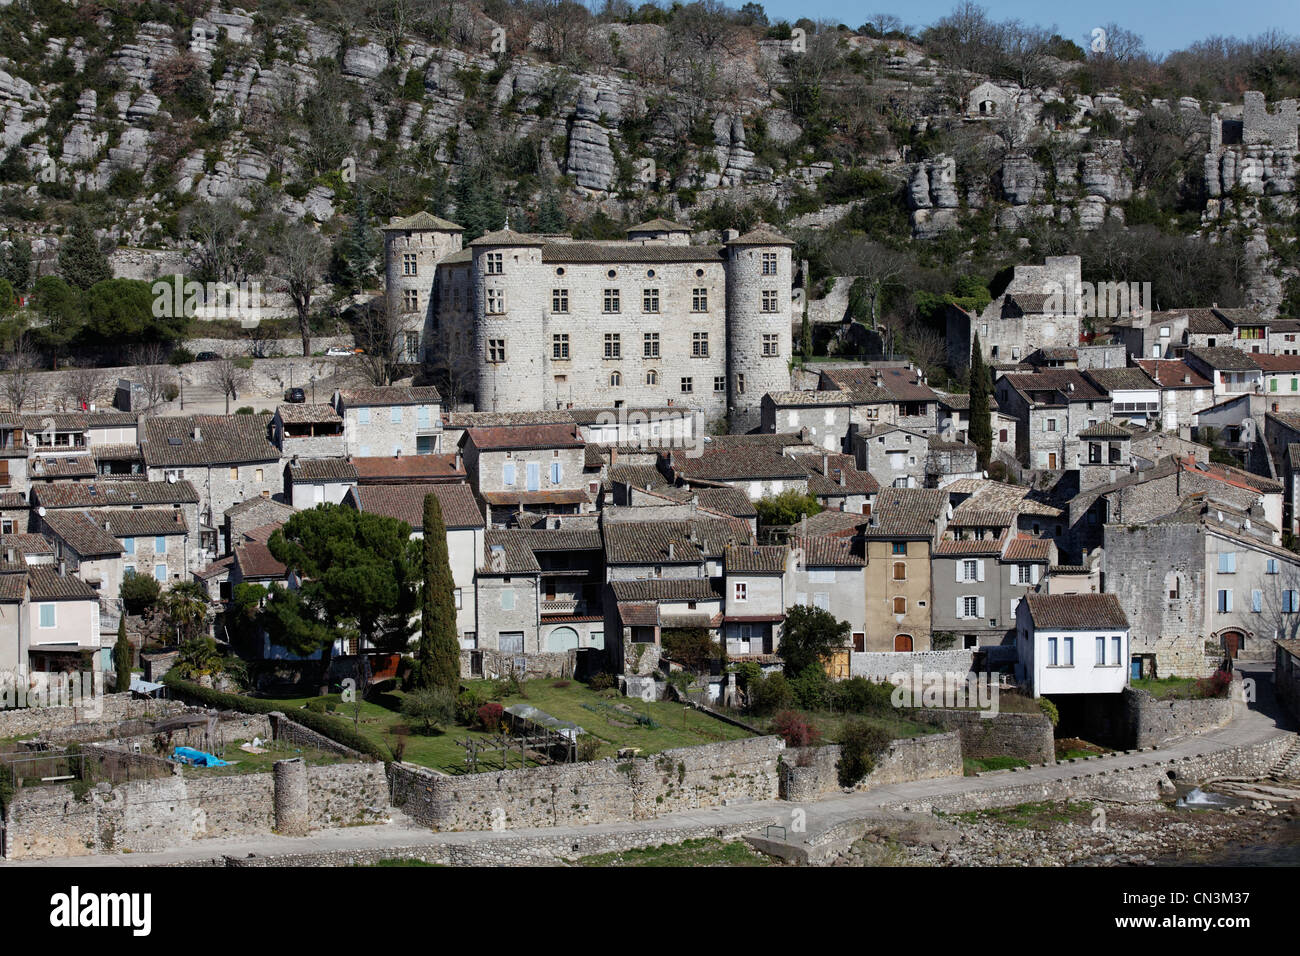 La France, l'Ardèche, Vogue, étiqueté Les Plus Beaux Villages de France (Les Plus Beaux Villages Photo Stock